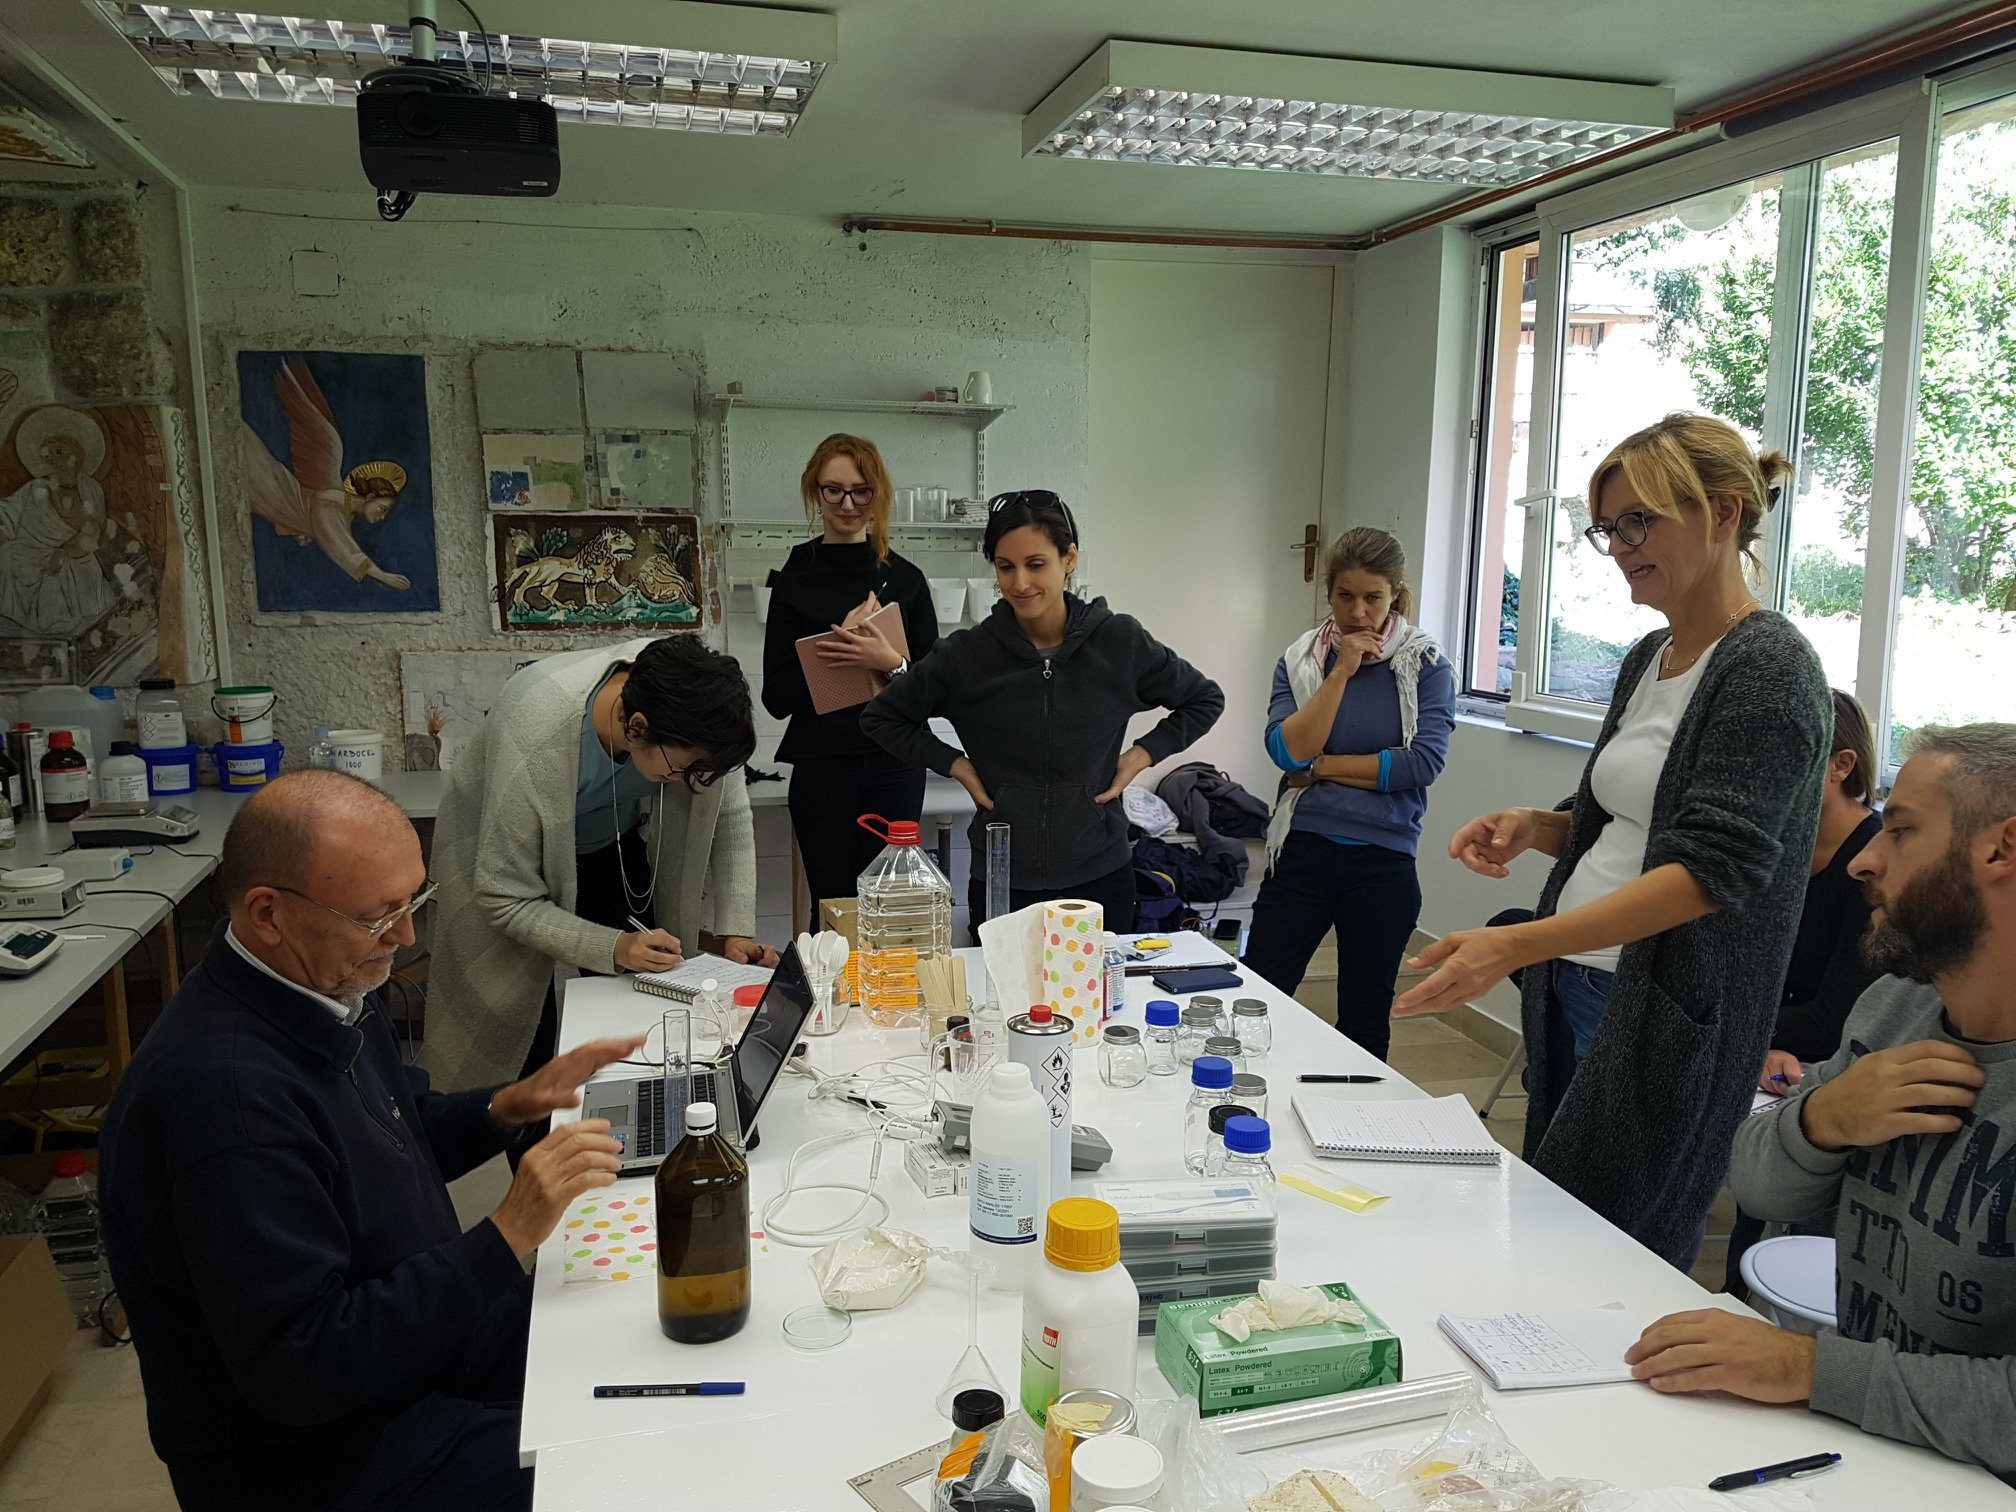 Prof. M. Coladonato, A. Marra, and participants of the workshop at the Department studios. Image courtesy of Ajda Mladenovič.